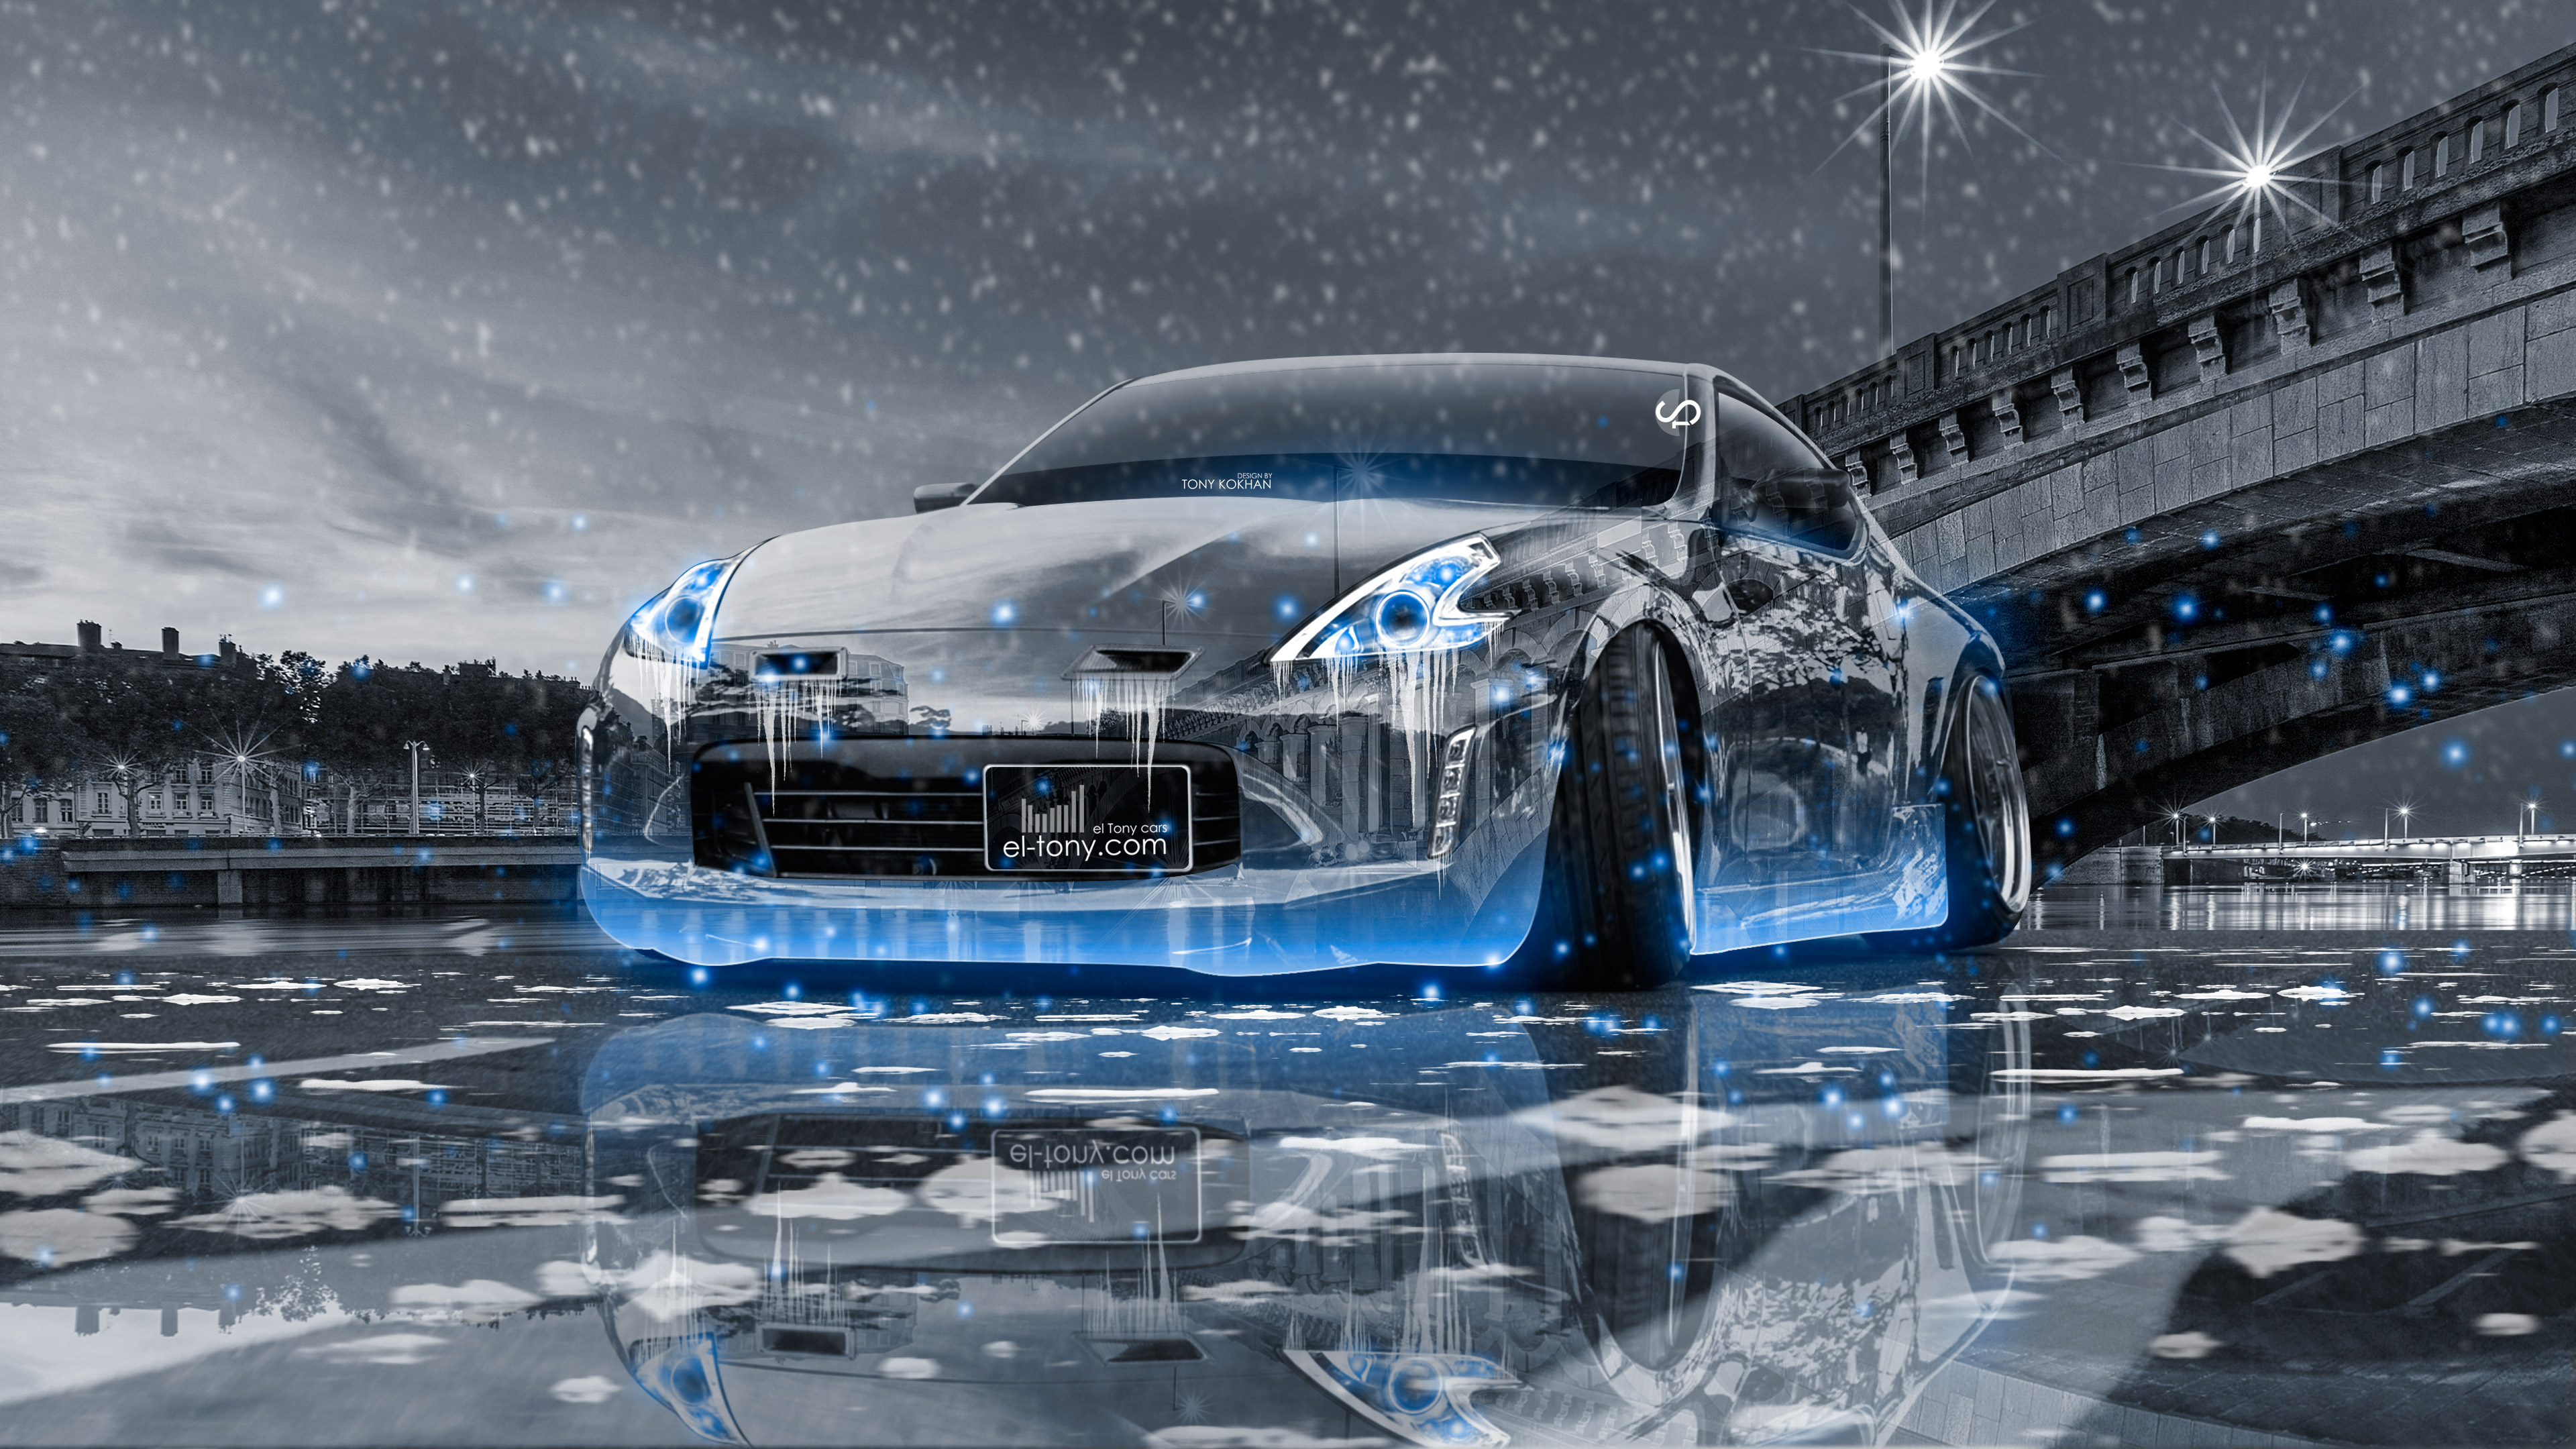 Merveilleux Nissan 370Z Tuning Crystal City Ice Snow Car 2016 Wallpapers 4K